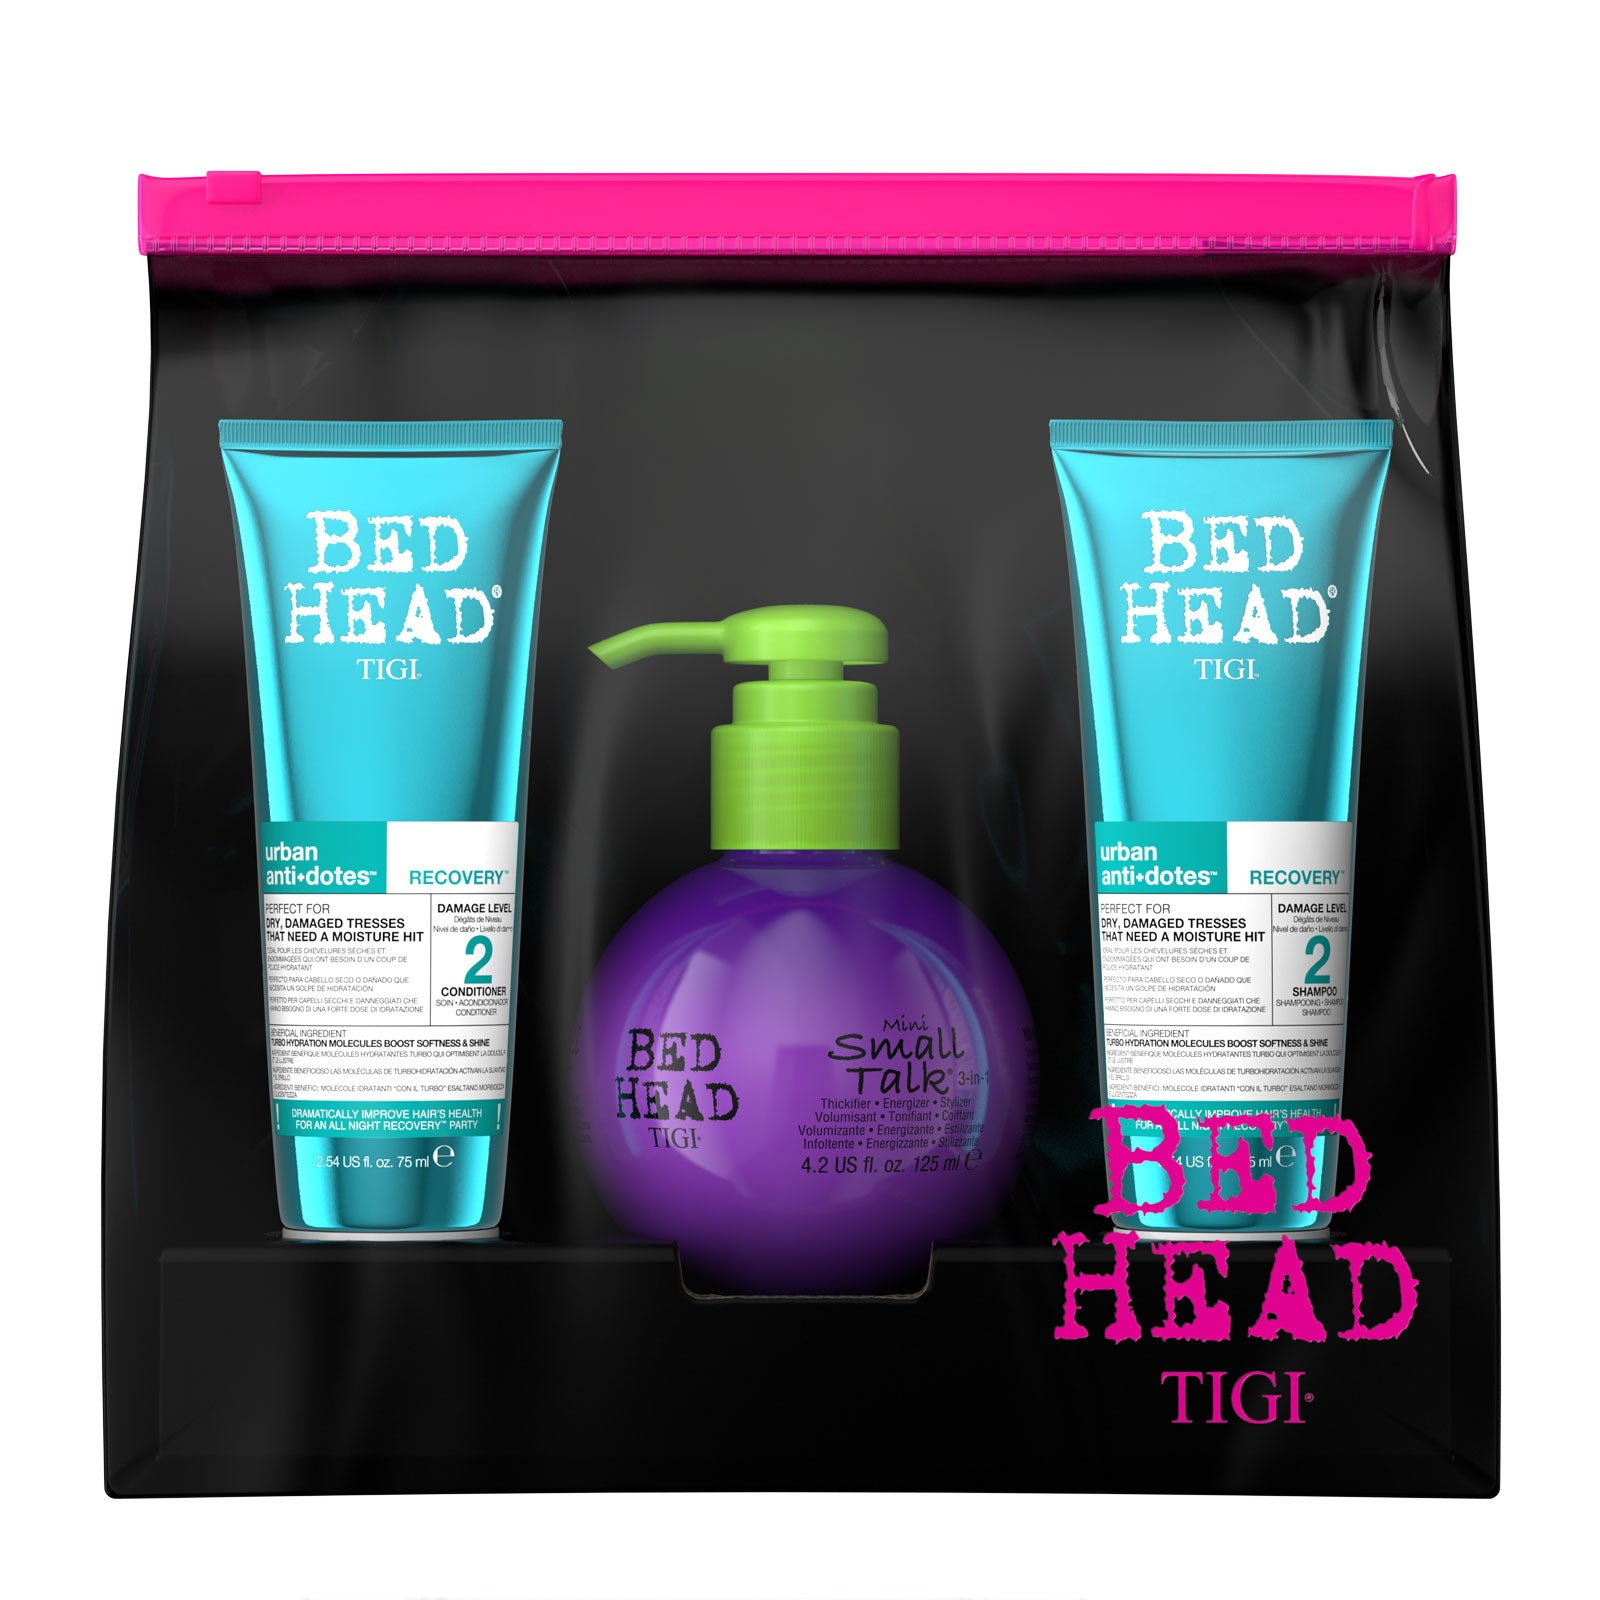 Bed Head by TIGI Moisturising and Volumising Hair Mini Set